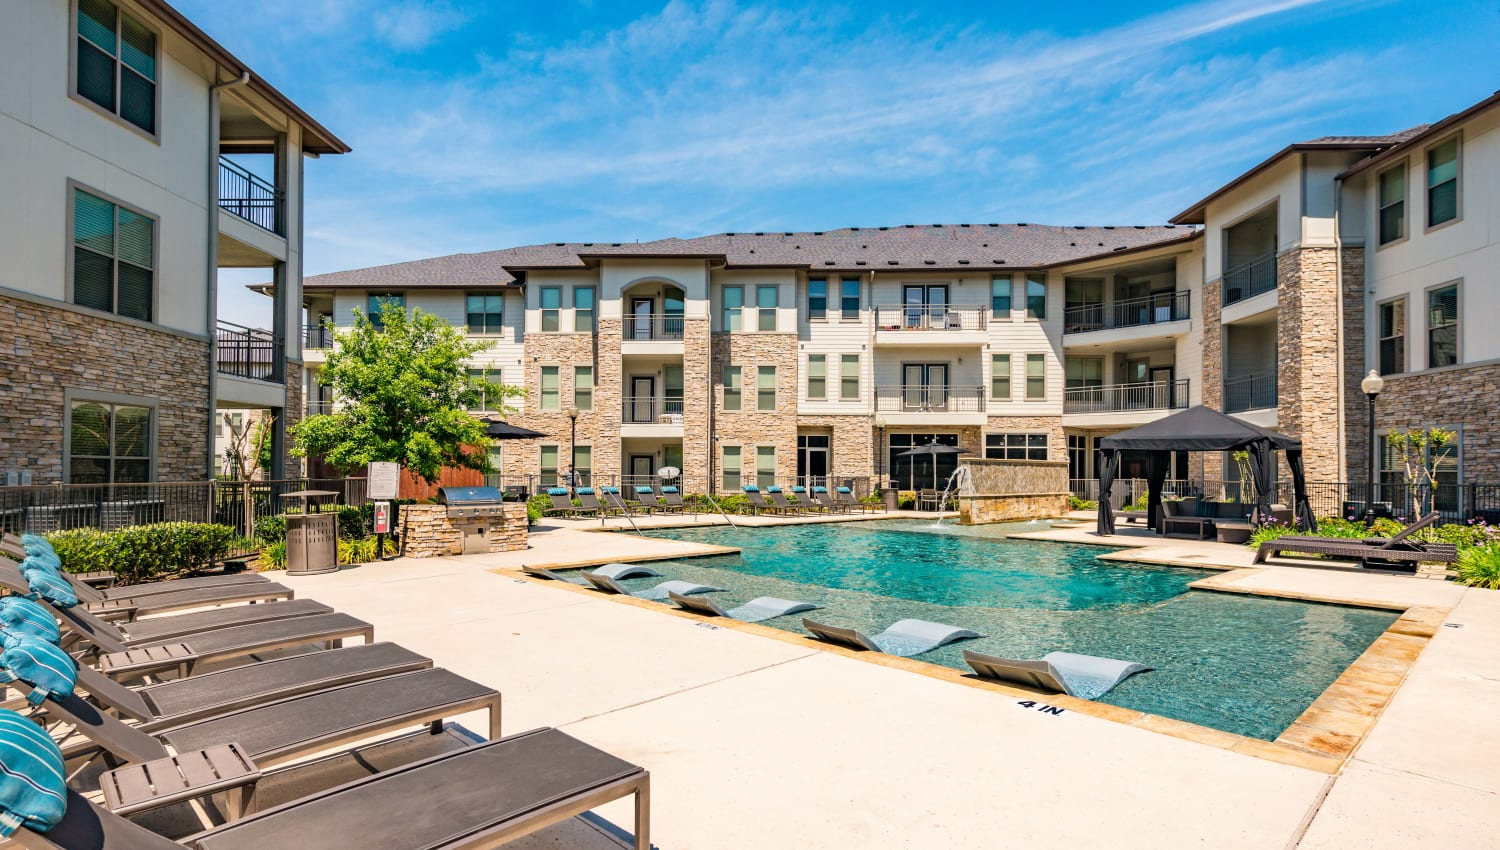 Outdoor lounge area around the pool at Olympus at Waterside Estates in Richmond, Texas